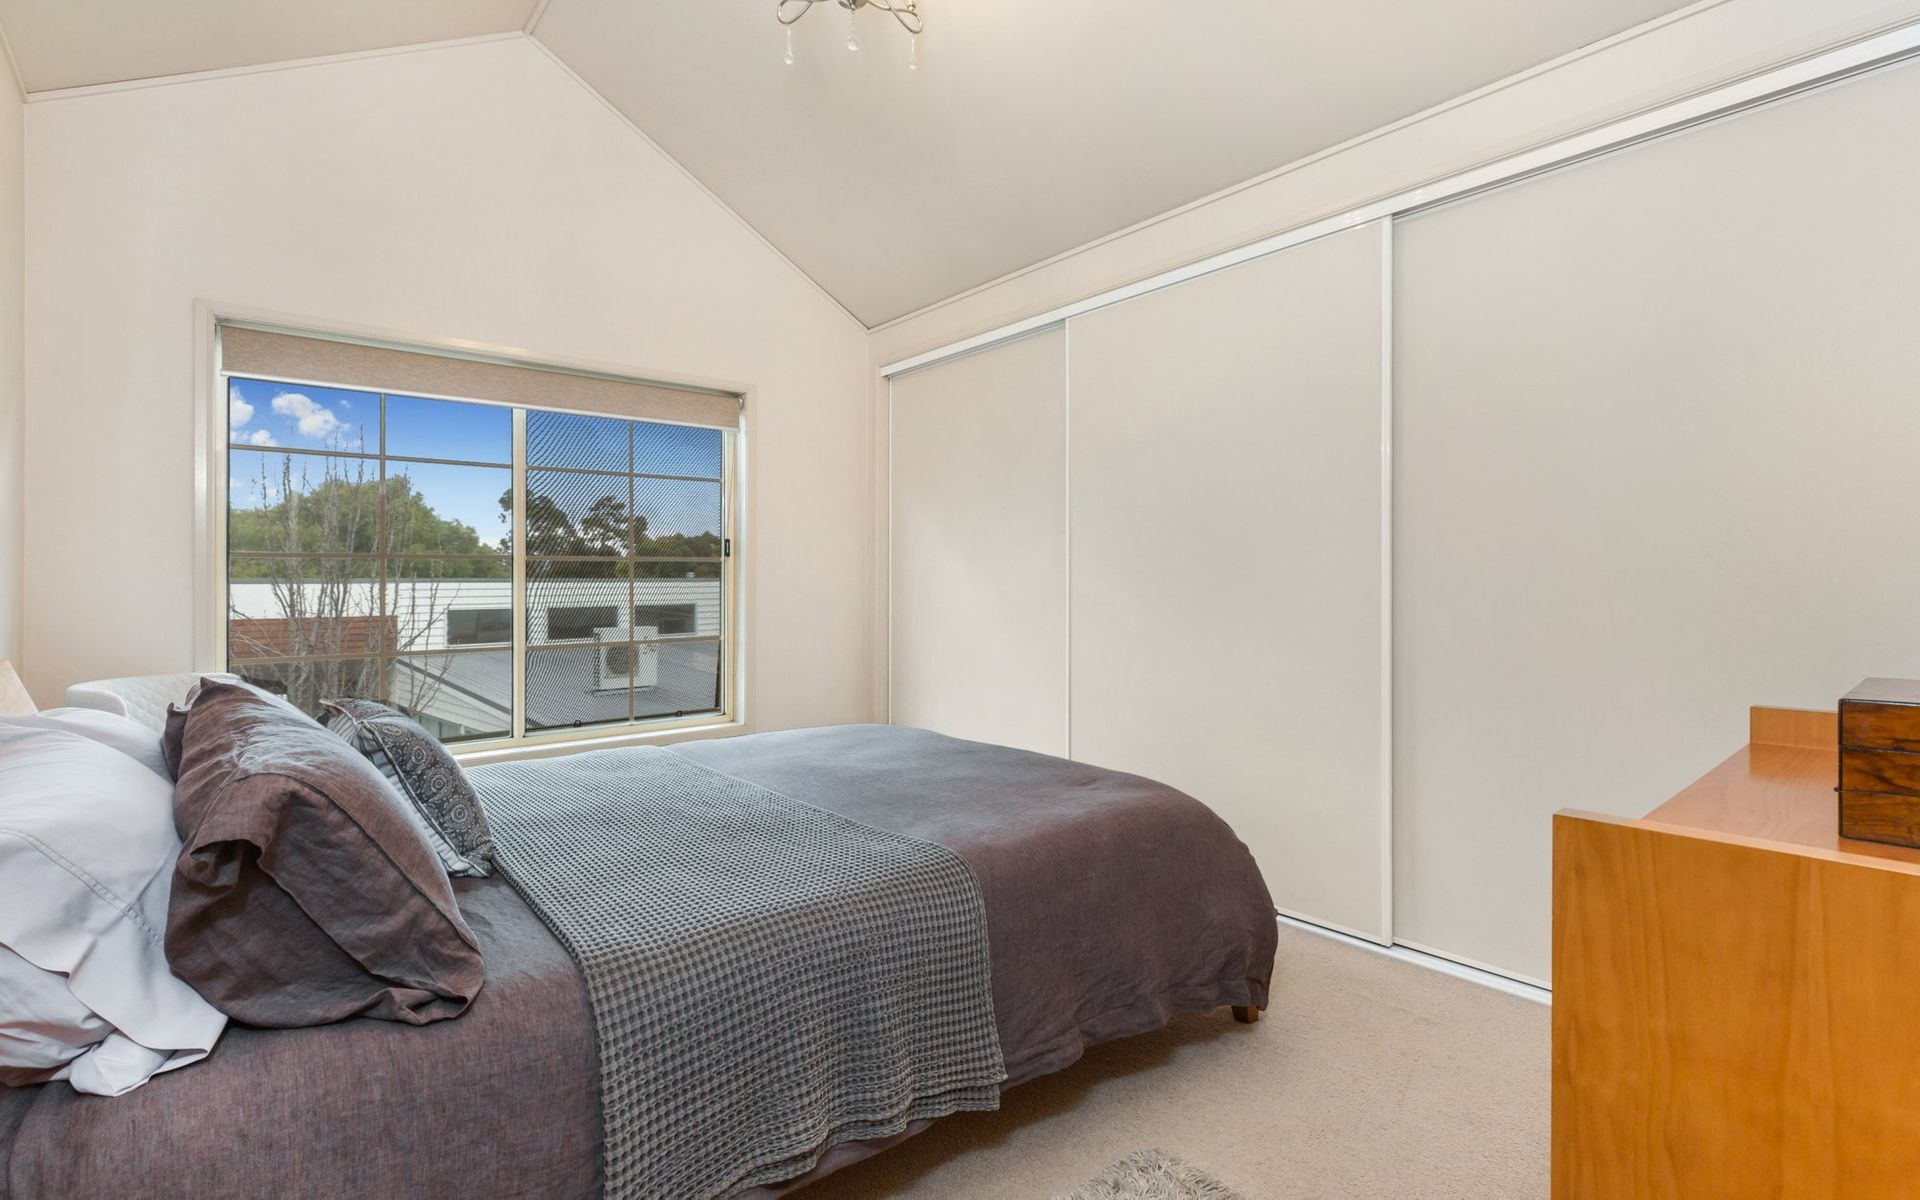 2/135 Wills Street, Bendigo, VIC 3550